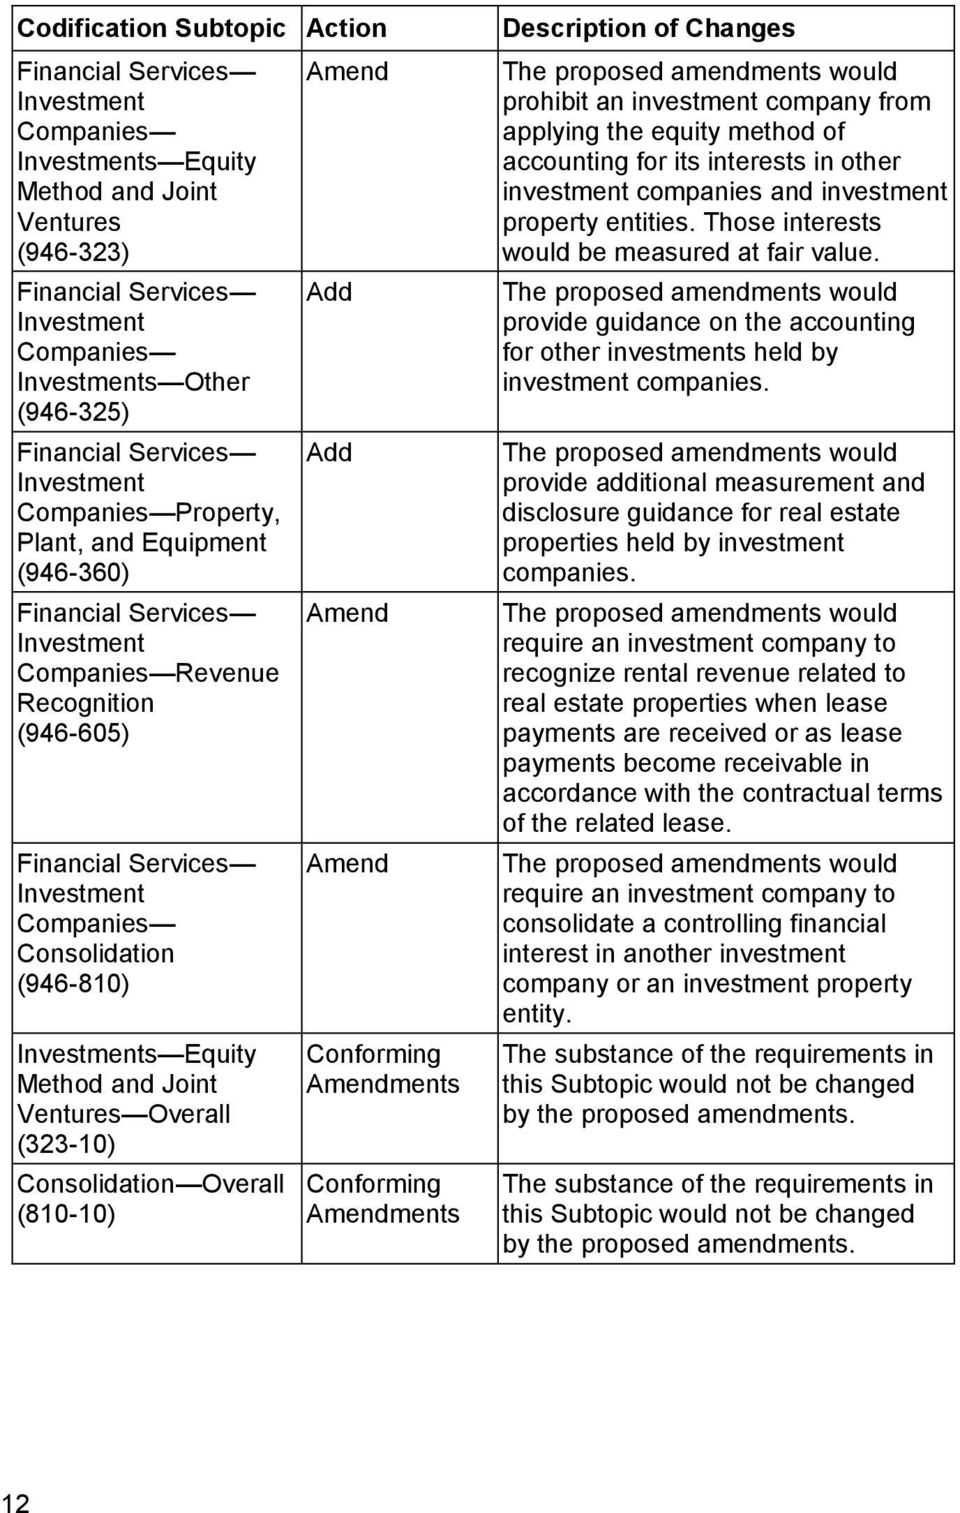 Consolidation (946-810) Investments Equity Method and Joint Ventures Overall (323-10) Consolidation Overall (810-10) Amend Add Add Amend Amend Conforming Amendments Conforming Amendments Description